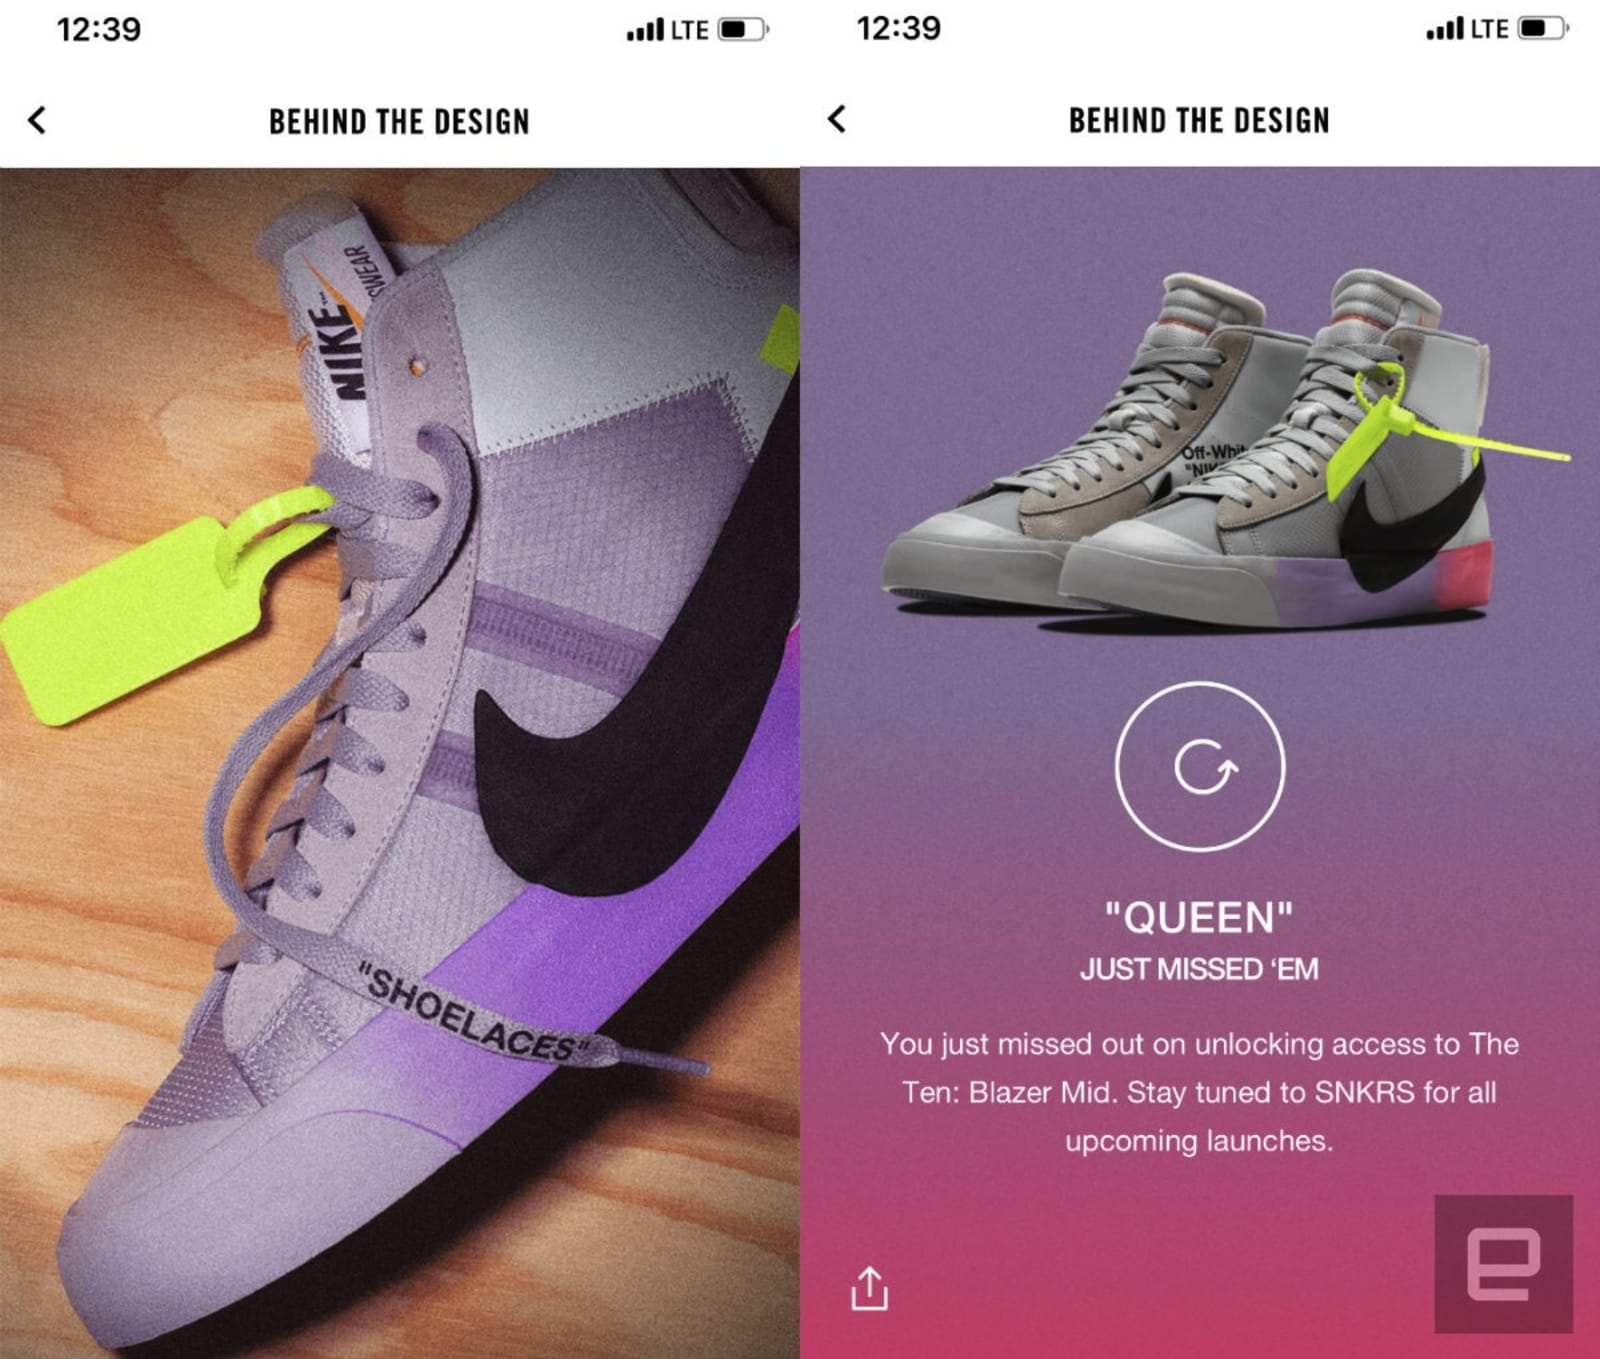 a7970f1a6f25a Nike upset hypebeasts with accidental Android-exclusive SNKRS drop